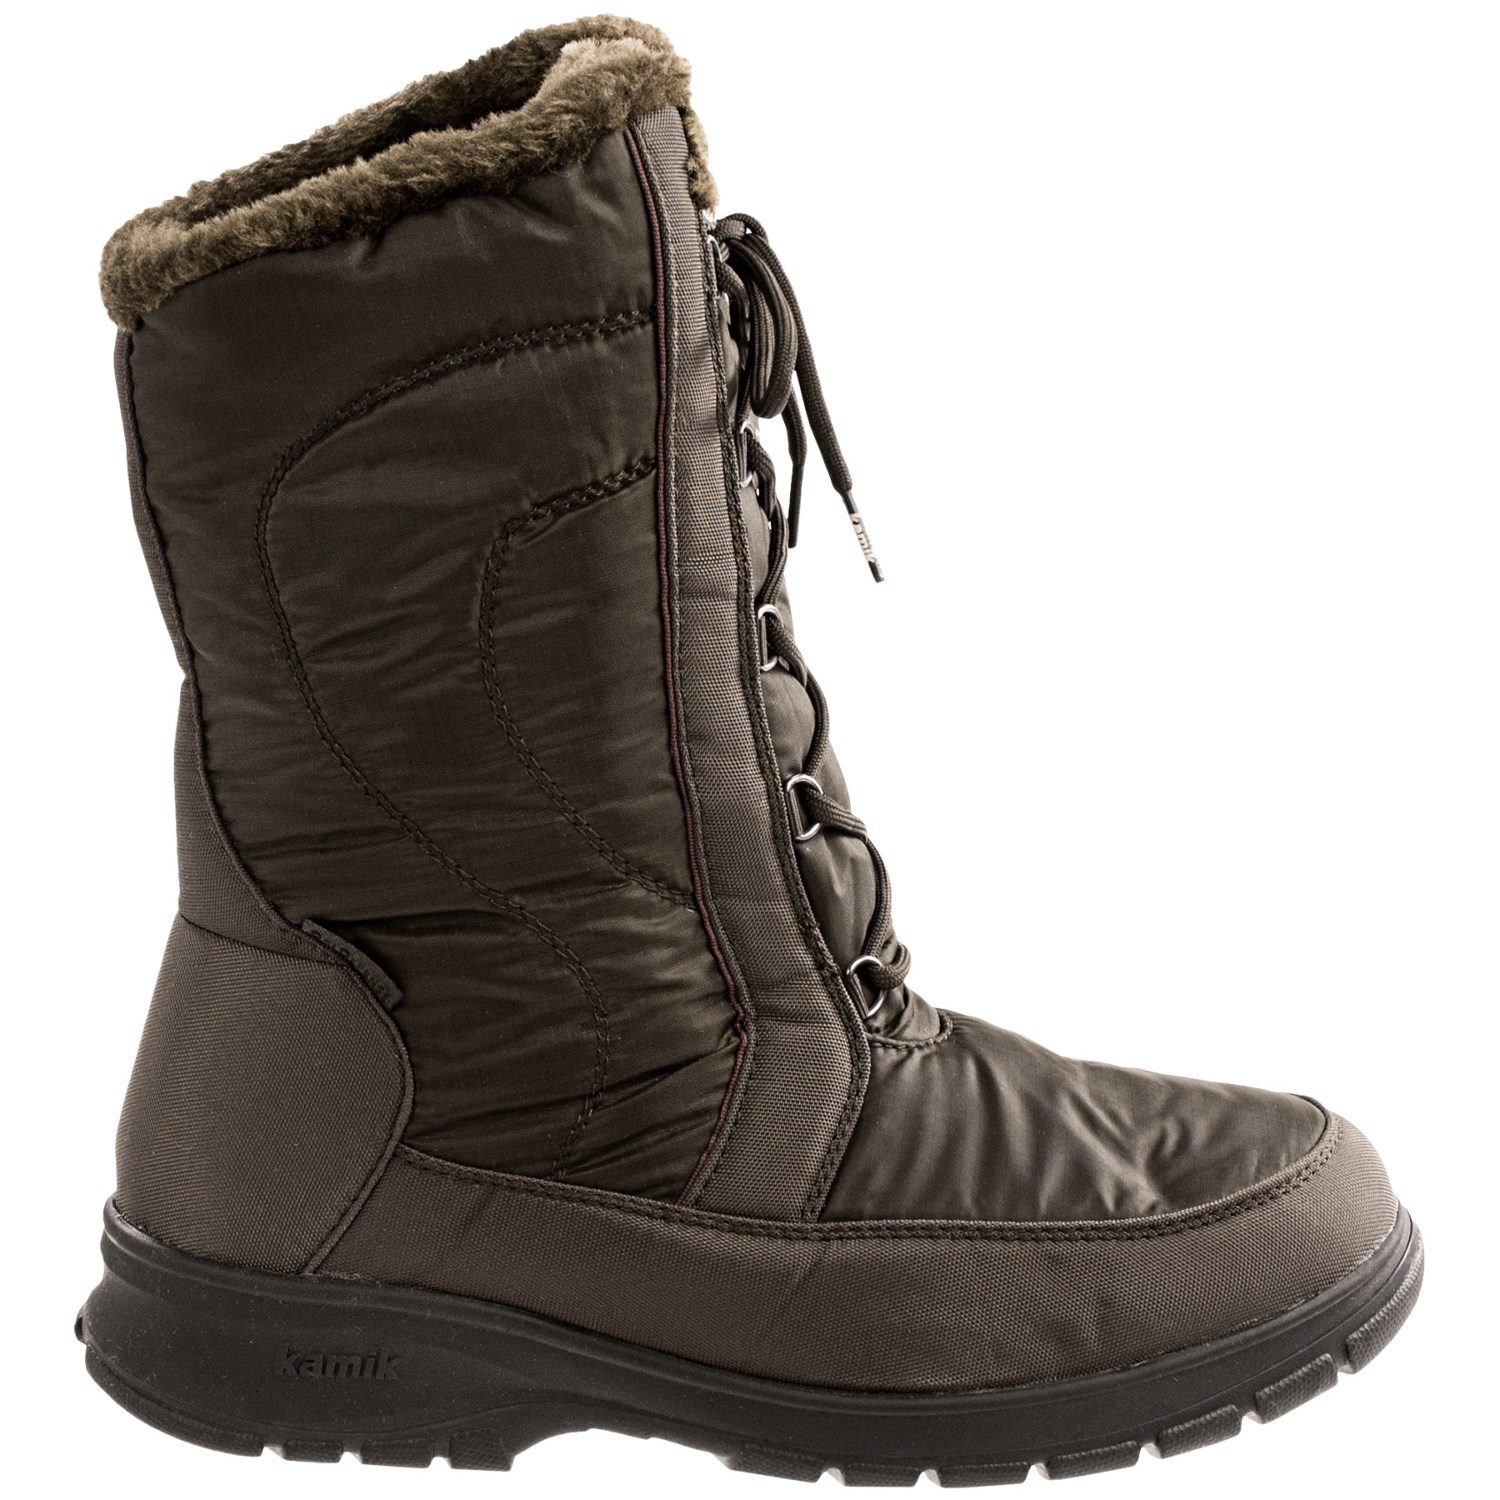 Lastest Womens Waterproof Snow Boots Clearance - 28 Images - Womens Waterproof Snow Boots Clearance Cr ...